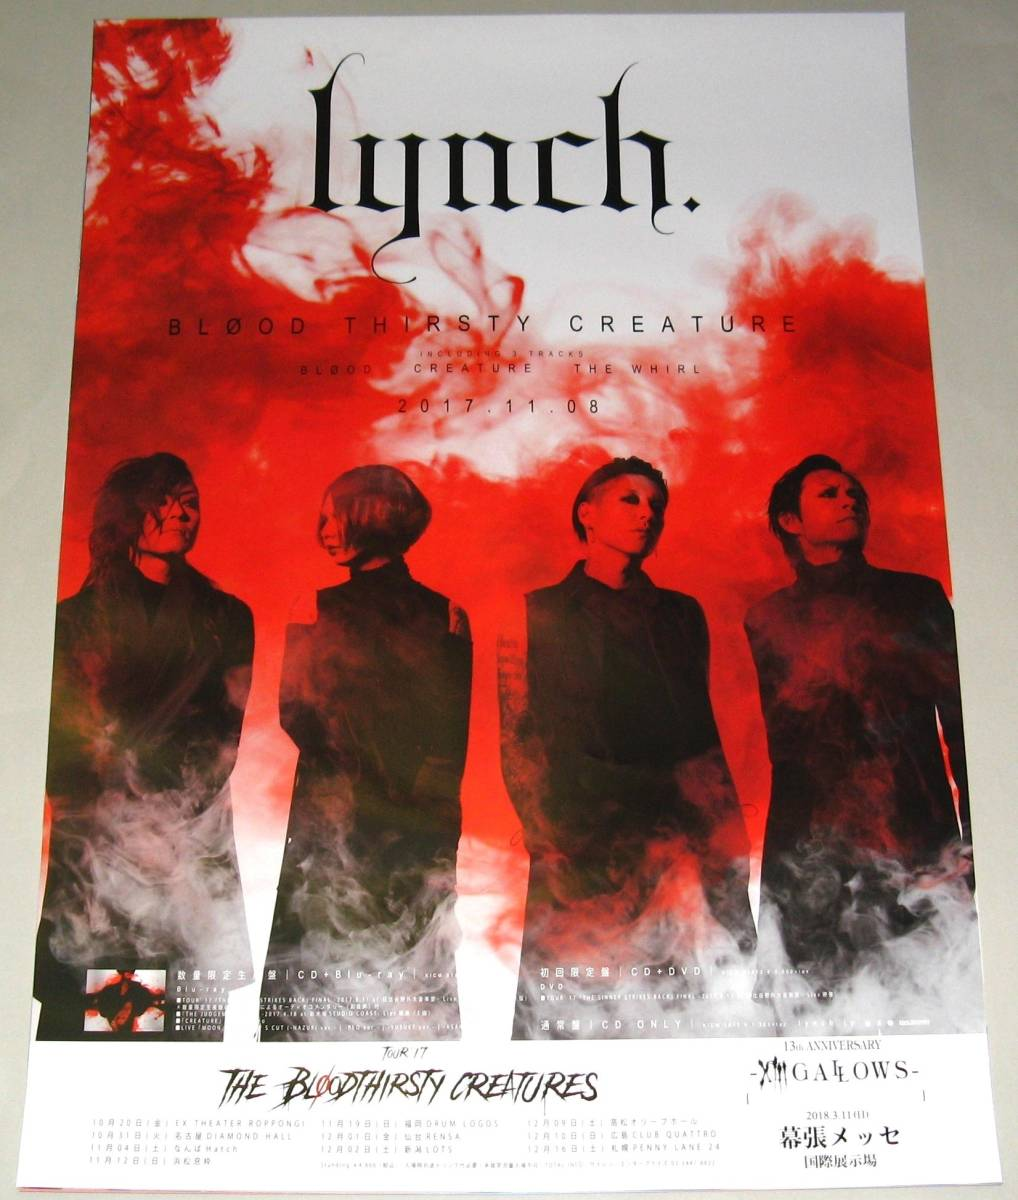 告知ポスター lynch. [BLOD THIRSTY CREATURE]